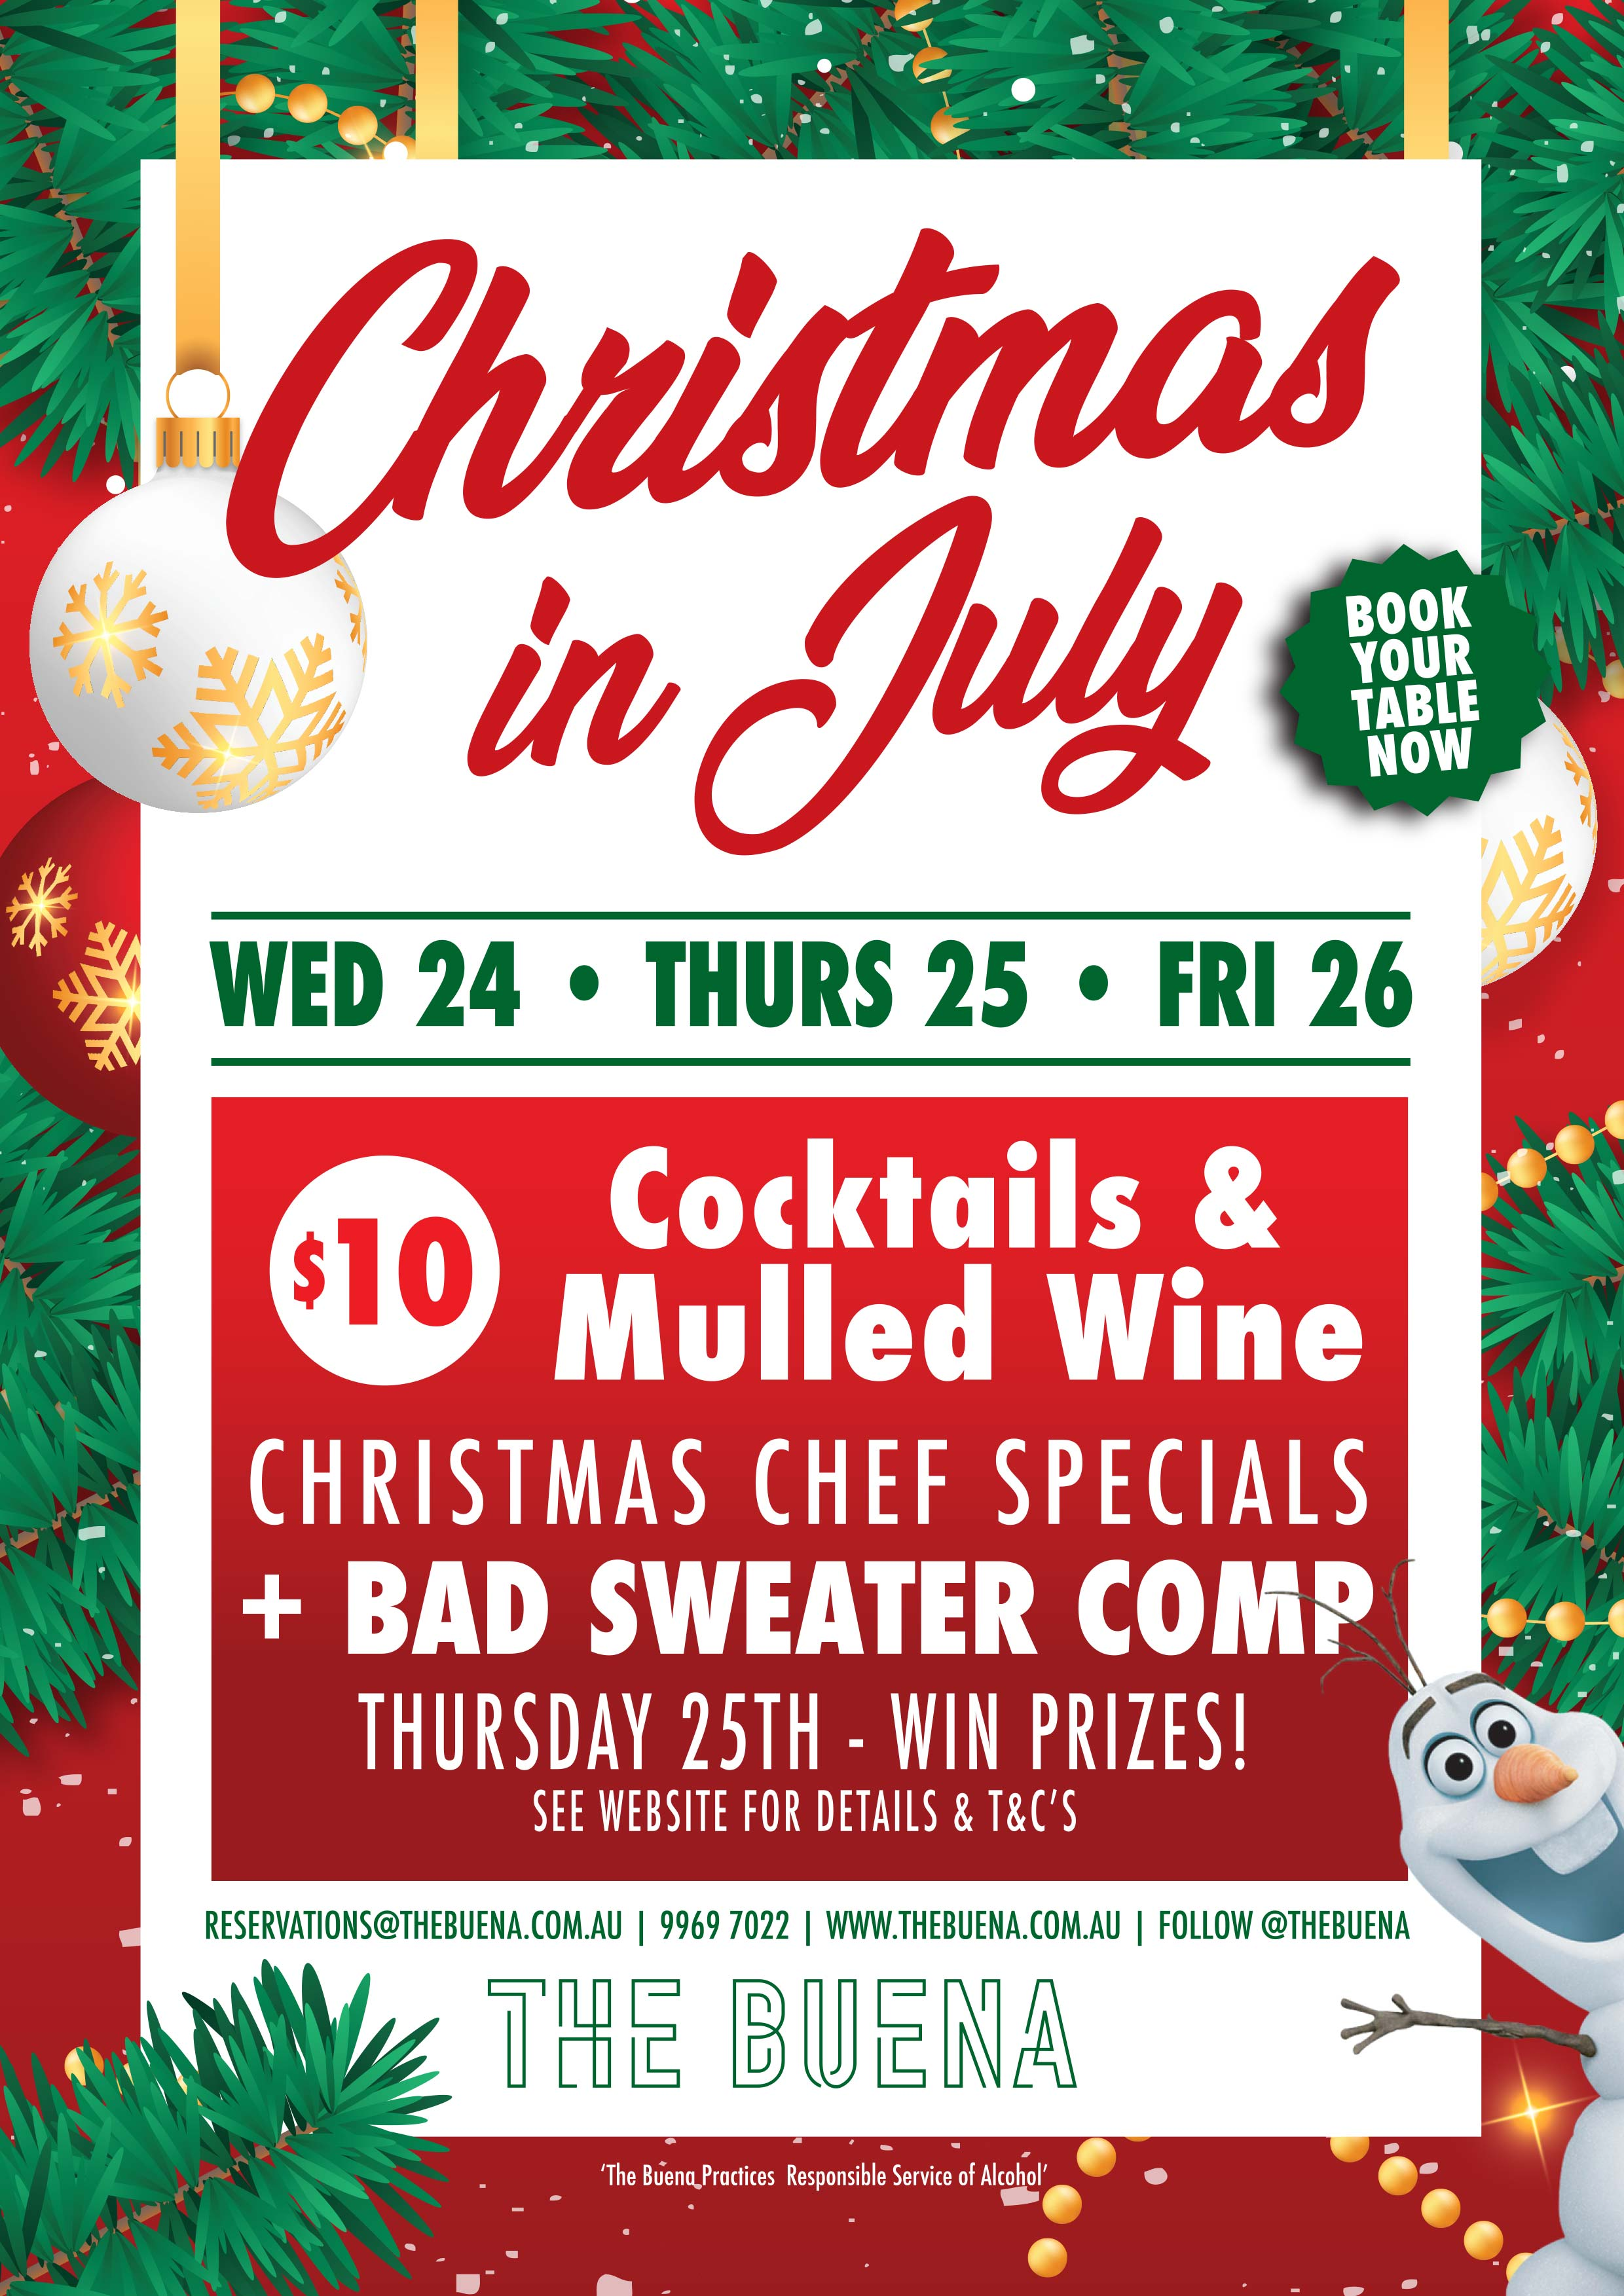 Happy Christmas In July Images.Christmas In July The Buena